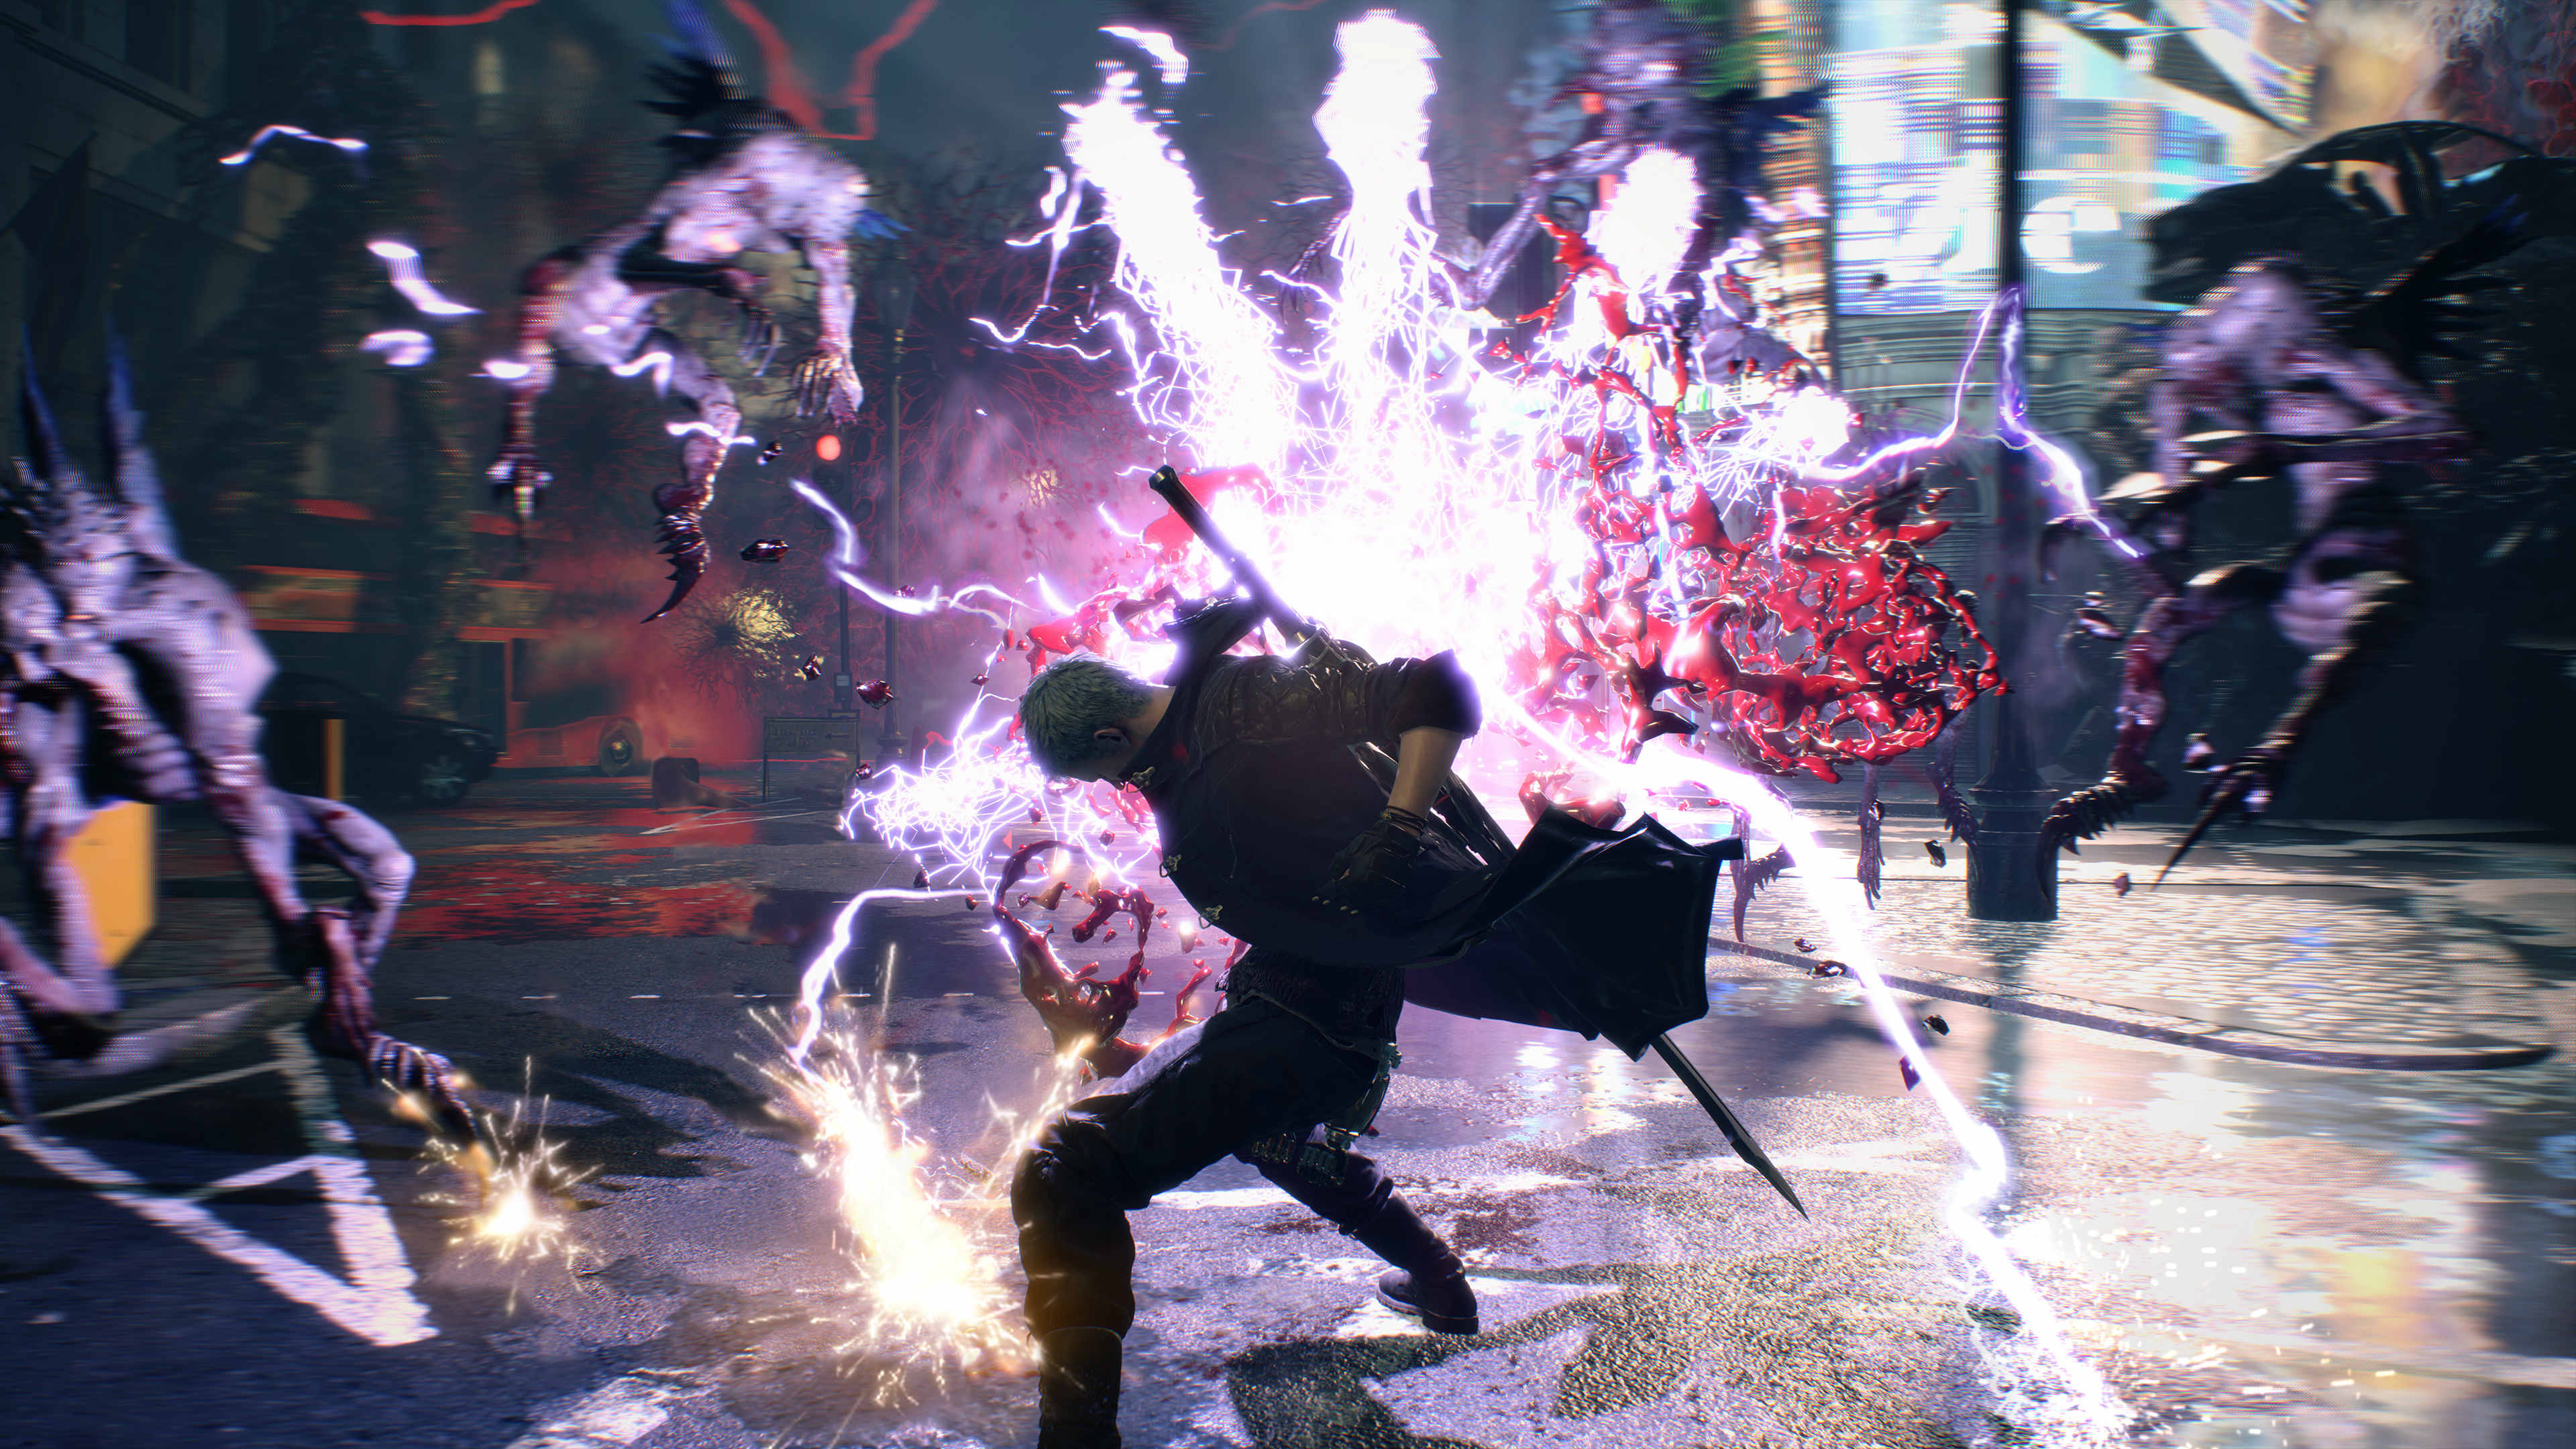 Devil May Cry 5 had the best showing at E3 for me, and it wasn't even close screenshot